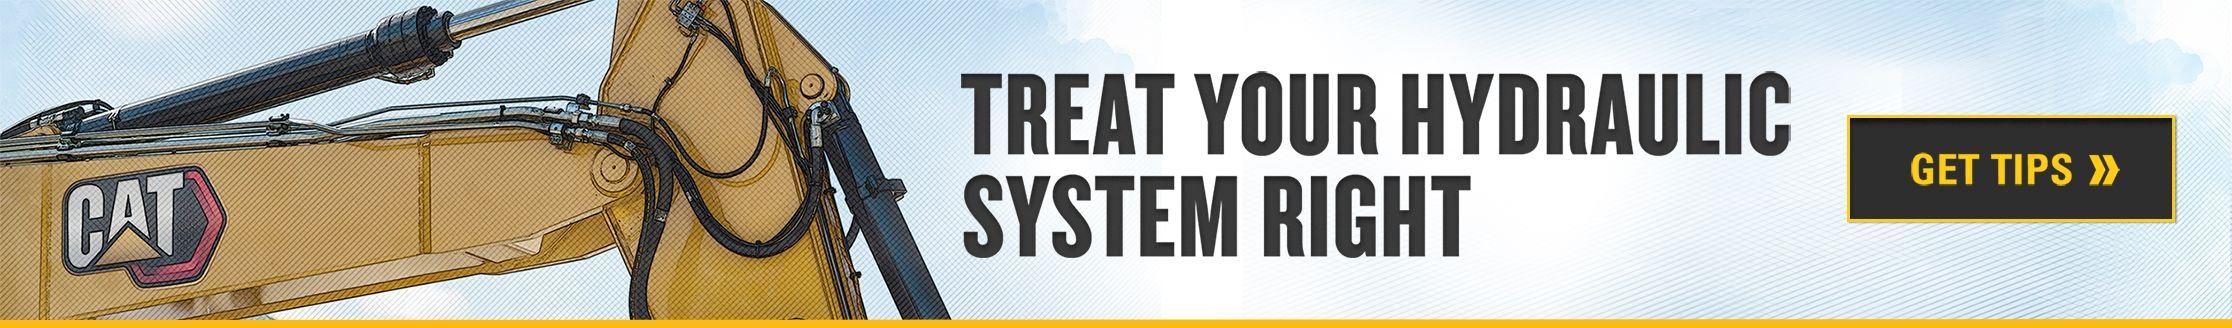 TREAT YOUR HYDRAULIC SYSTEM RIGHT